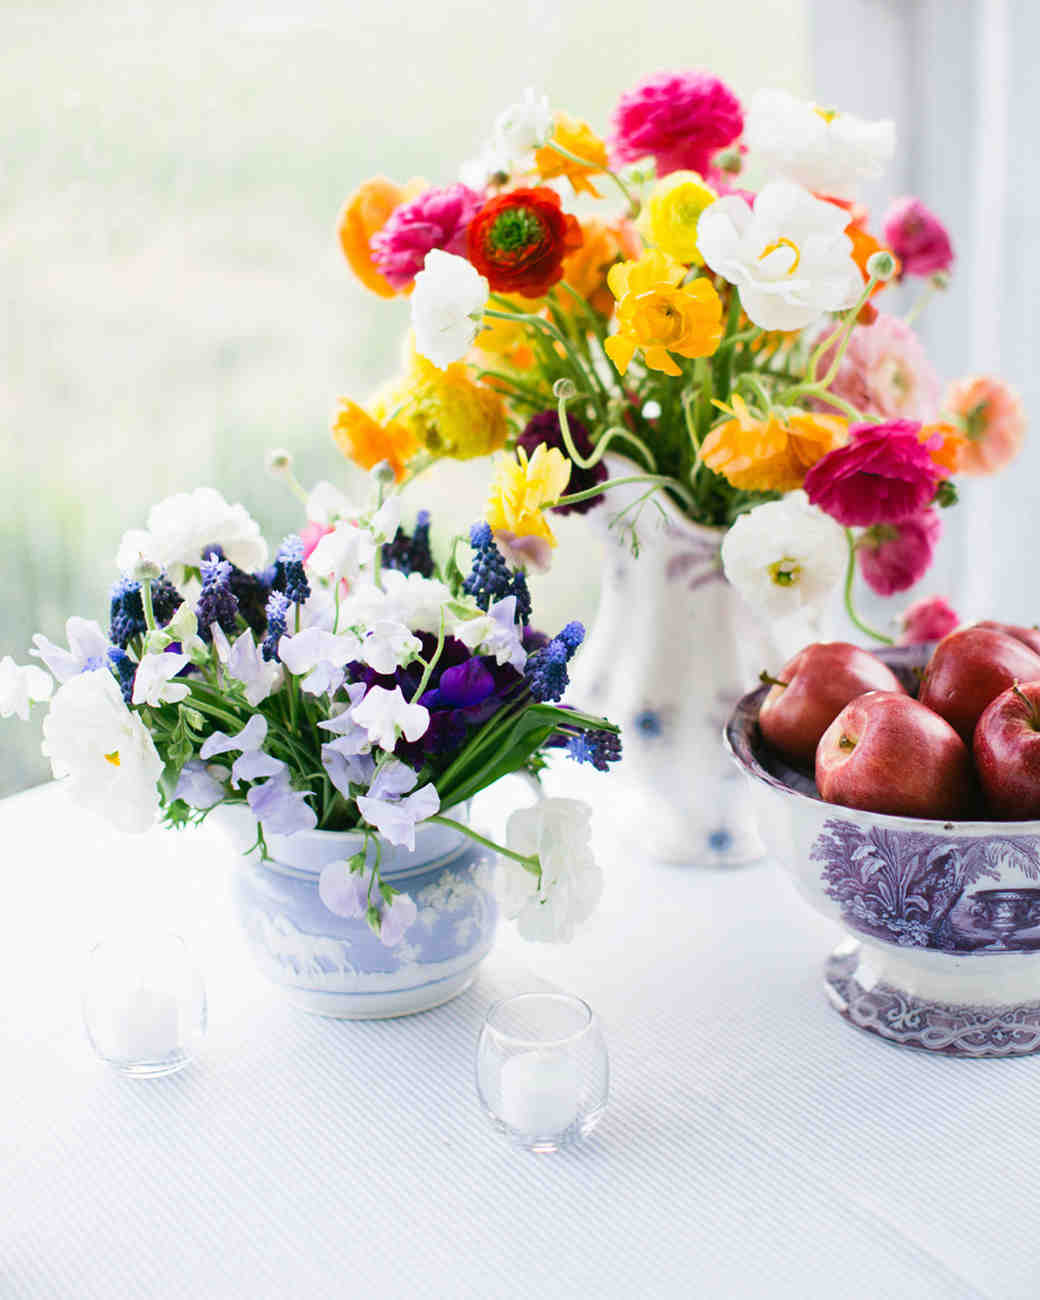 Wedding Centerpieces: 36 Simple Wedding Centerpieces